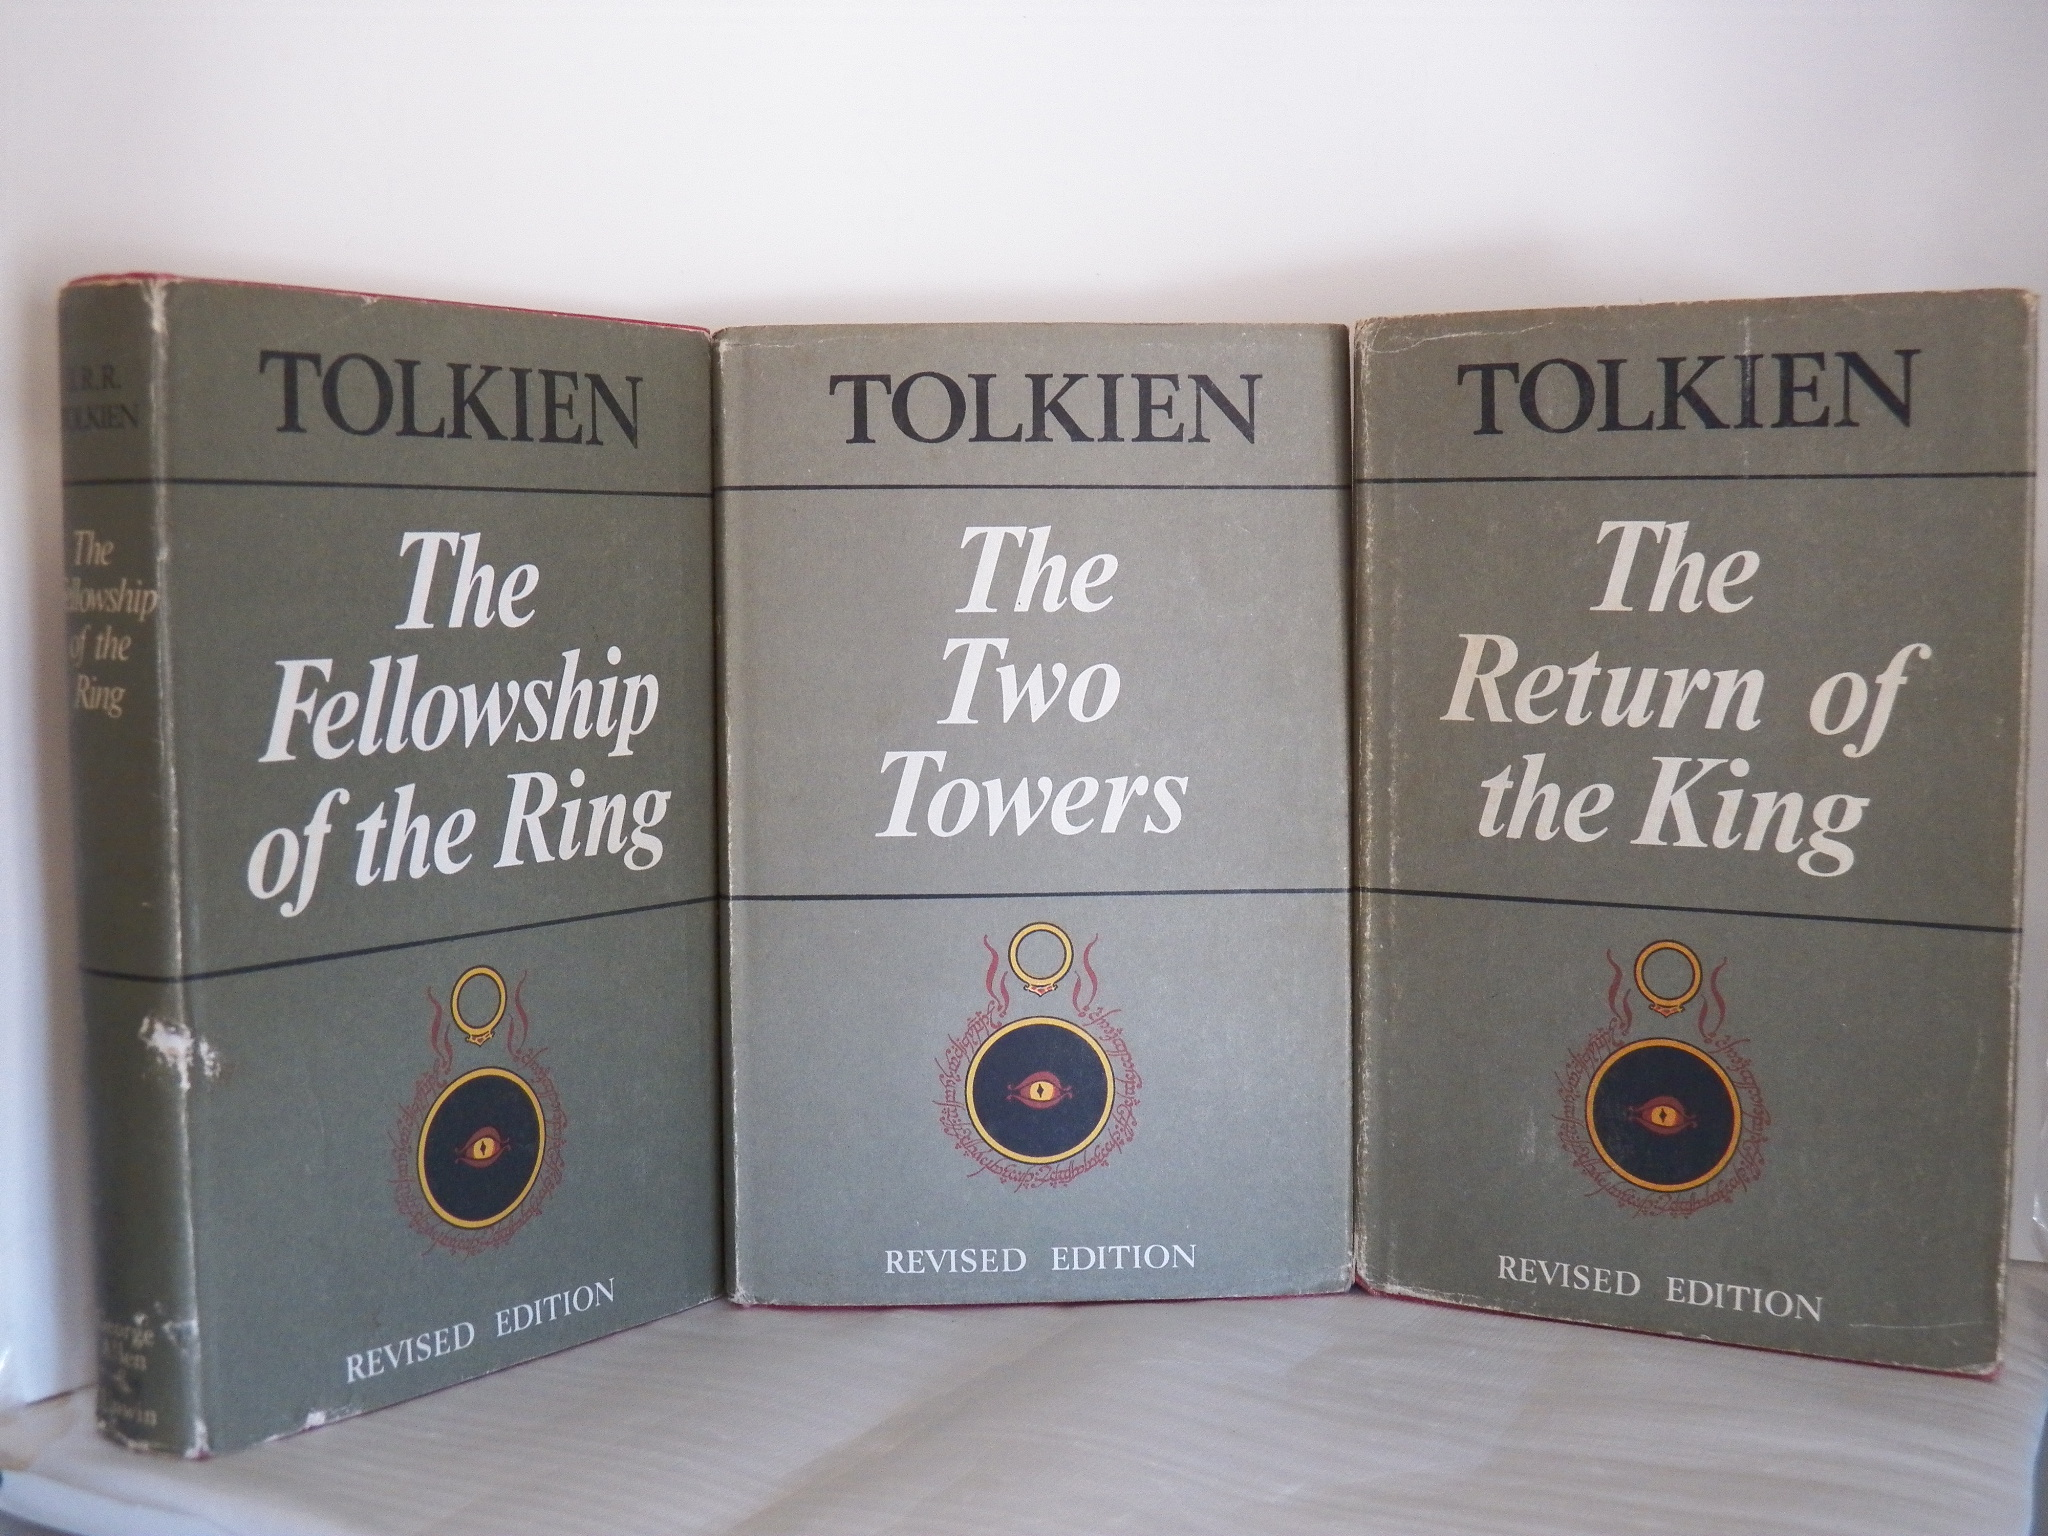 cover image of The Lord of the Rings; The Fellowship of the Ring, The Two Towers, The Return of the King second edition set for sale in New Zealand